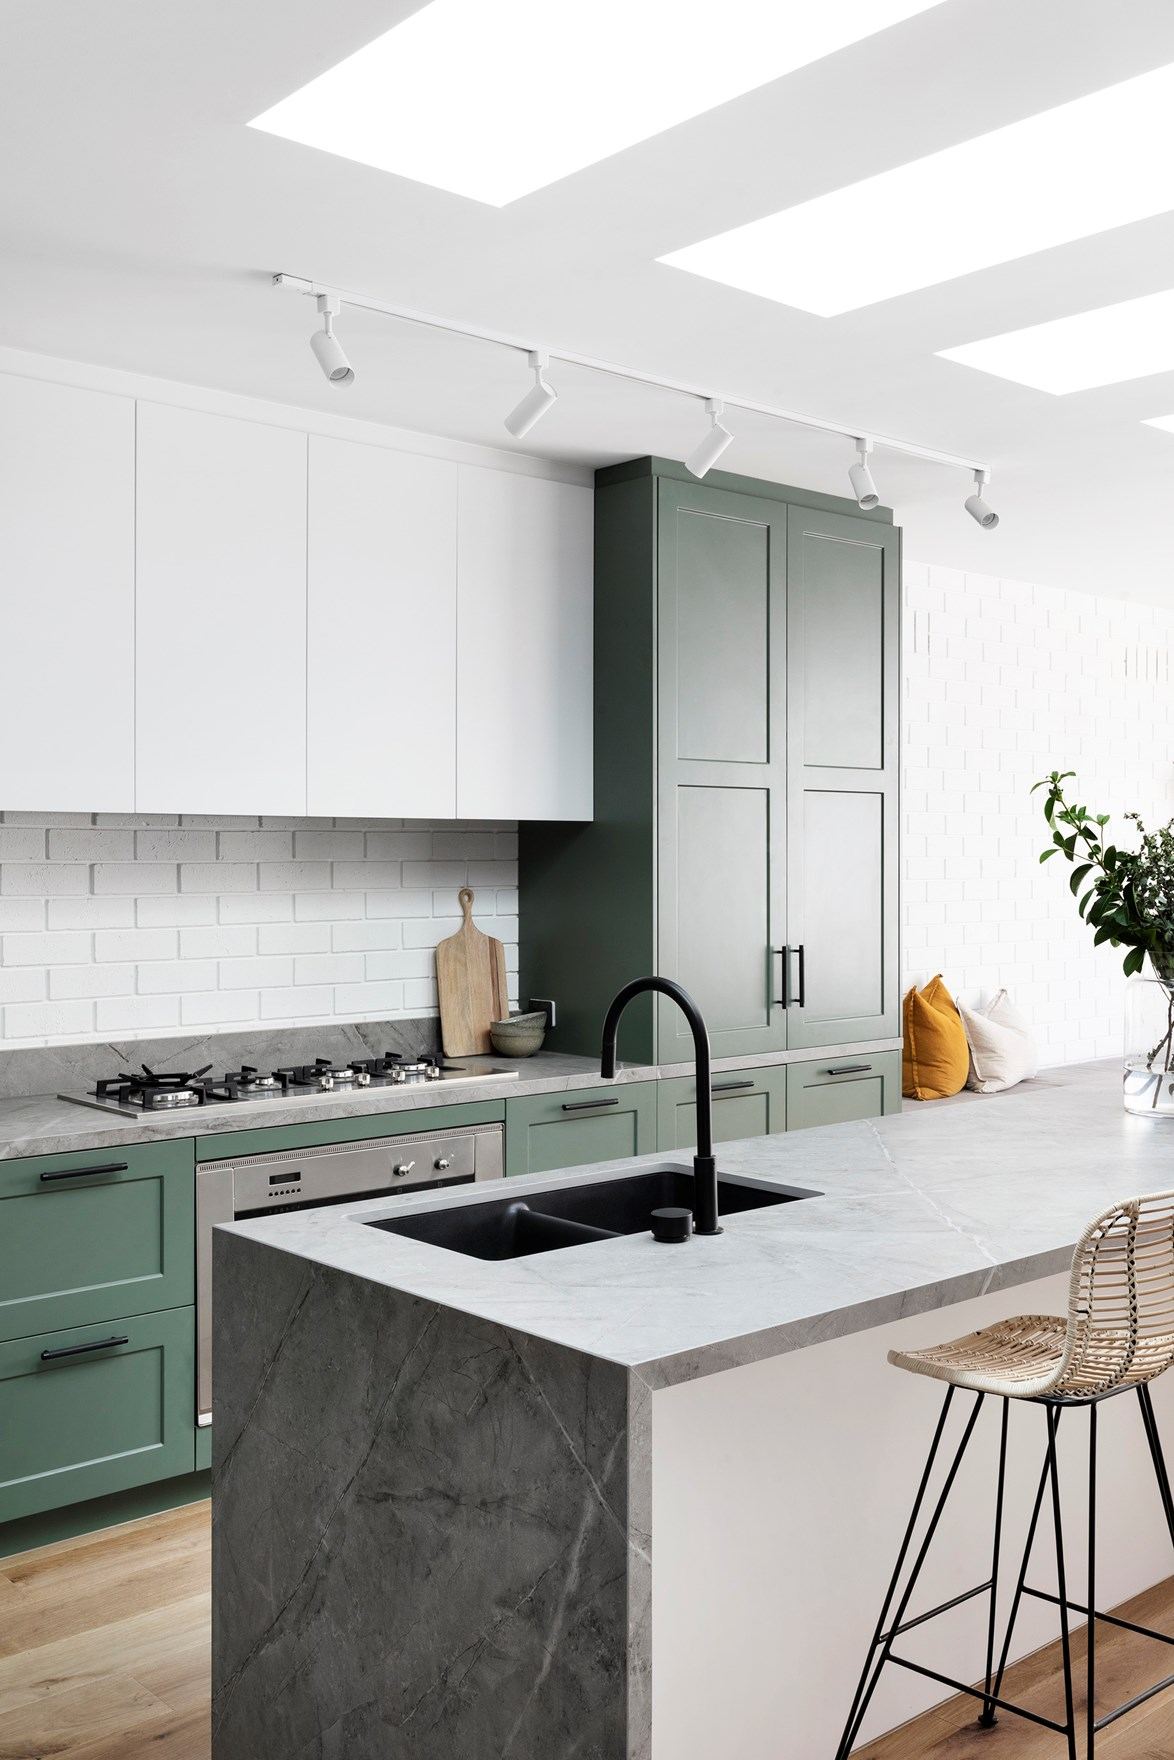 "When former Block contestants Bec and George revamped a [1970s-era home](https://www.homestolove.com.au/bec-and-george-home-renovation-20669|target=""_blank""), they really put their design prowess on show in the kitchen. Not only did they create visual impact by painting the cabinets in the shade 'Spirulina' by Dulux, but they installed a generous island topped with [Dekton engineered stone](https://www.homestolove.com.au/durable-engineered-stone-kitchen-benchtops-18823